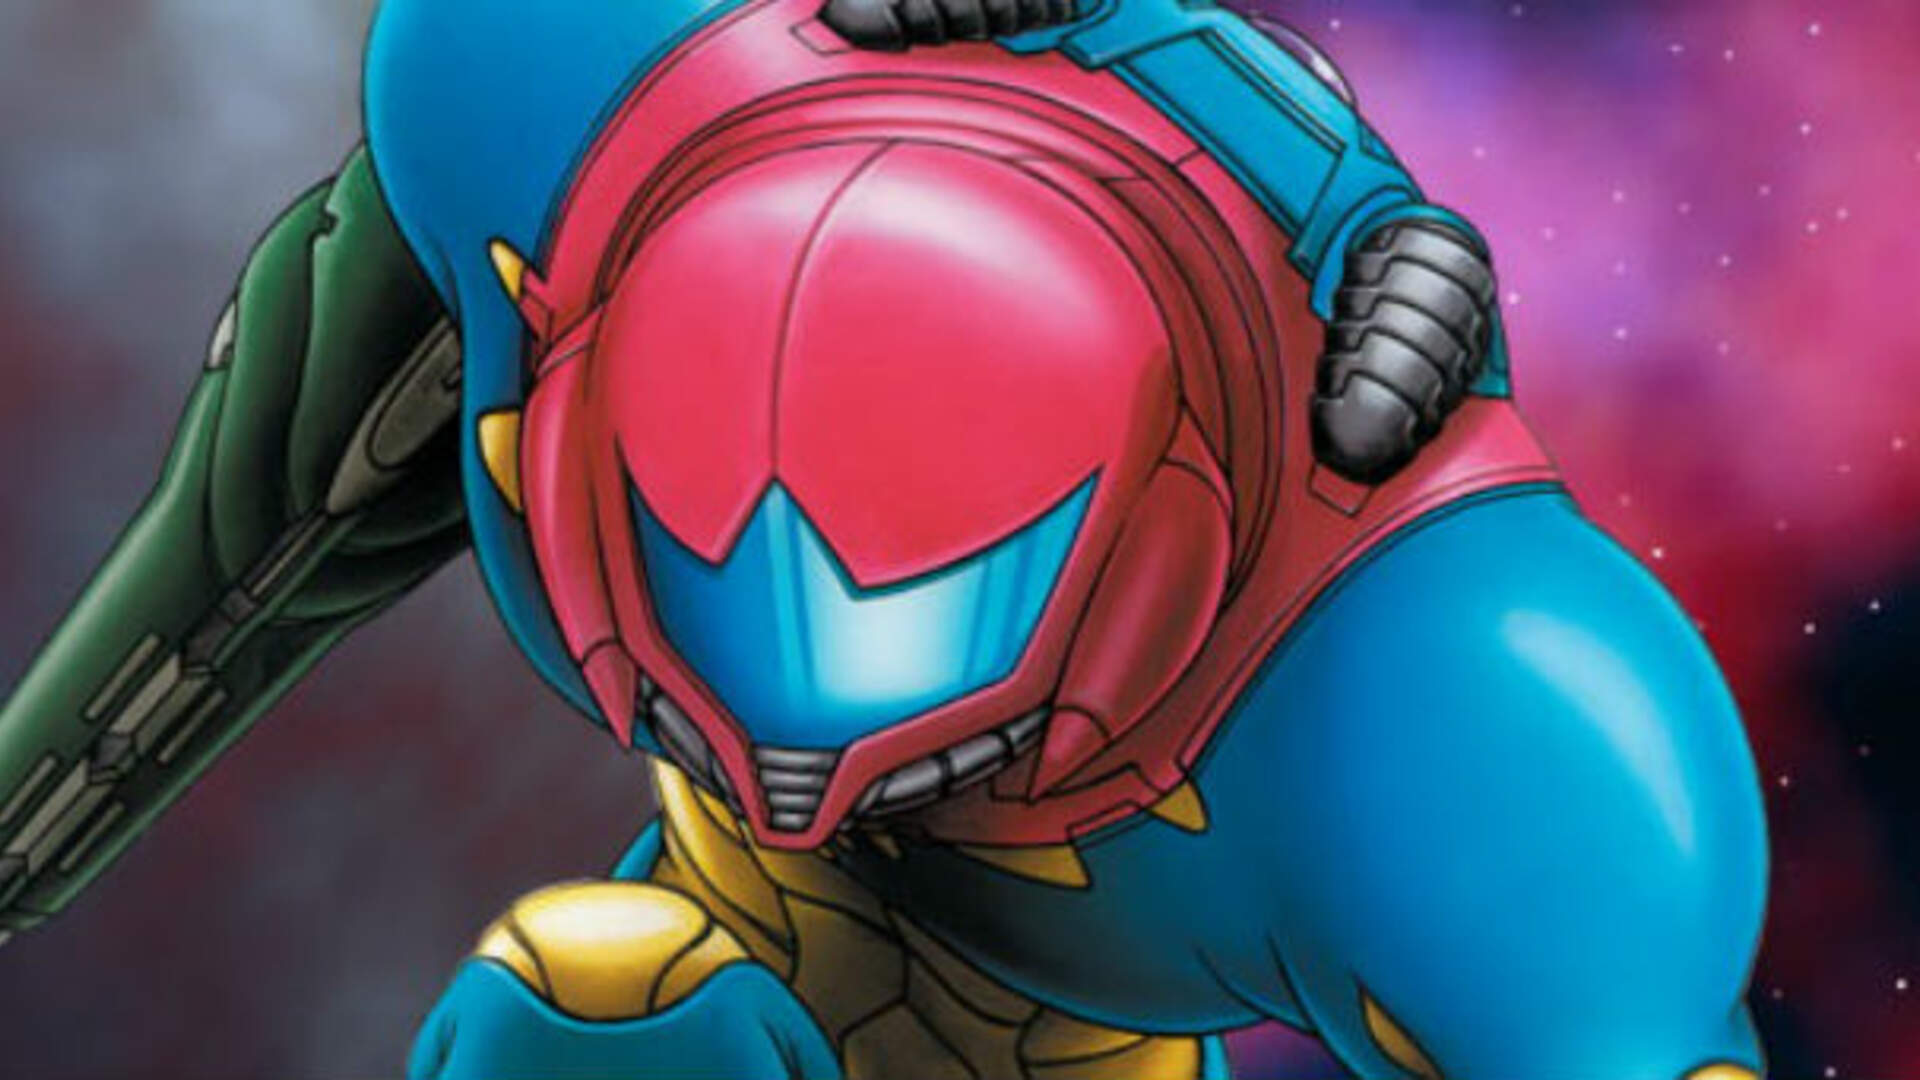 Metroid Game By Game Reviews: Metroid Fusion